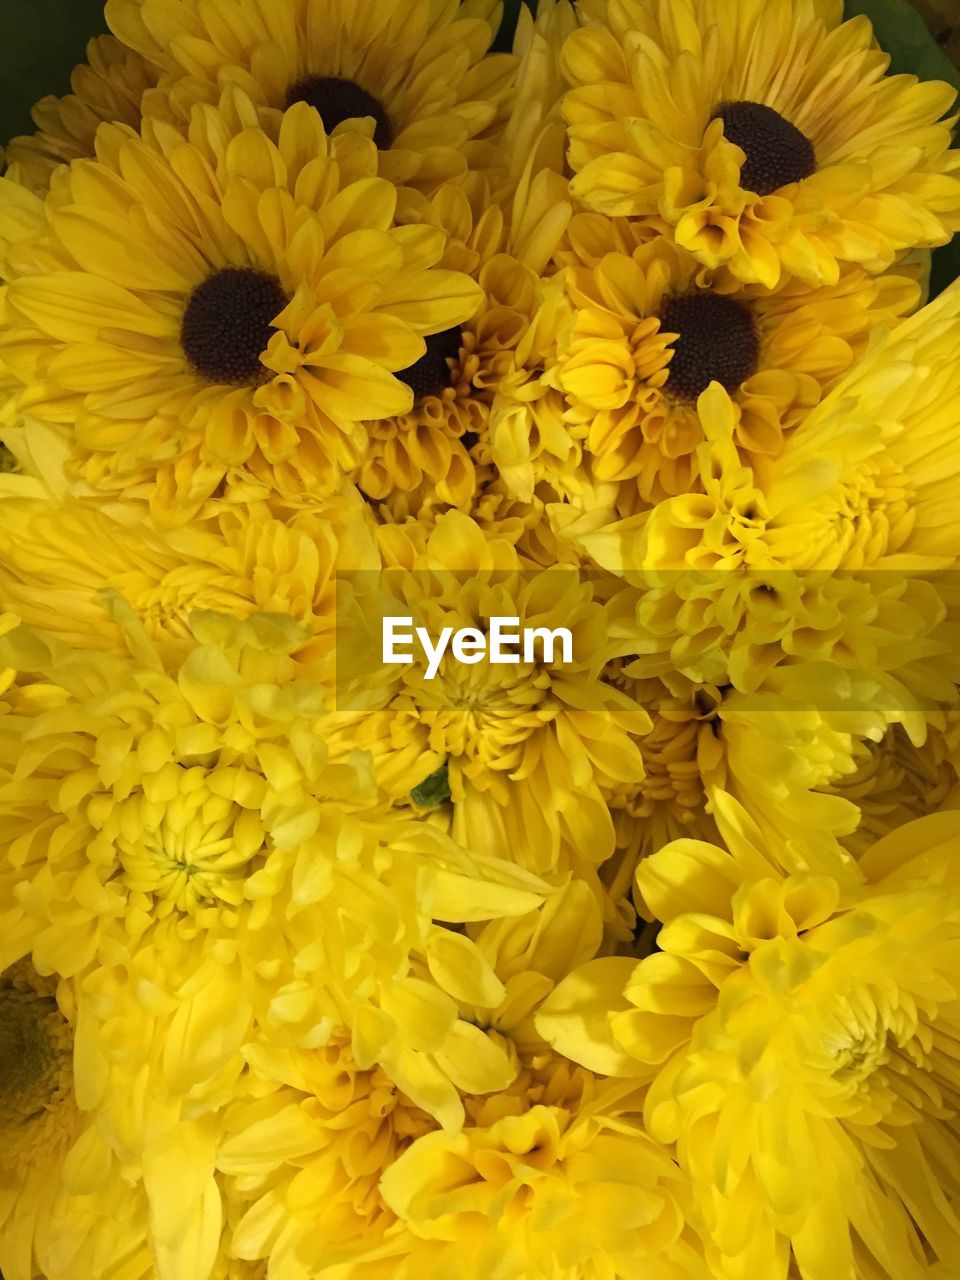 flower, yellow, freshness, fragility, petal, flower head, no people, backgrounds, close-up, beauty in nature, full frame, flower market, nature, outdoors, day